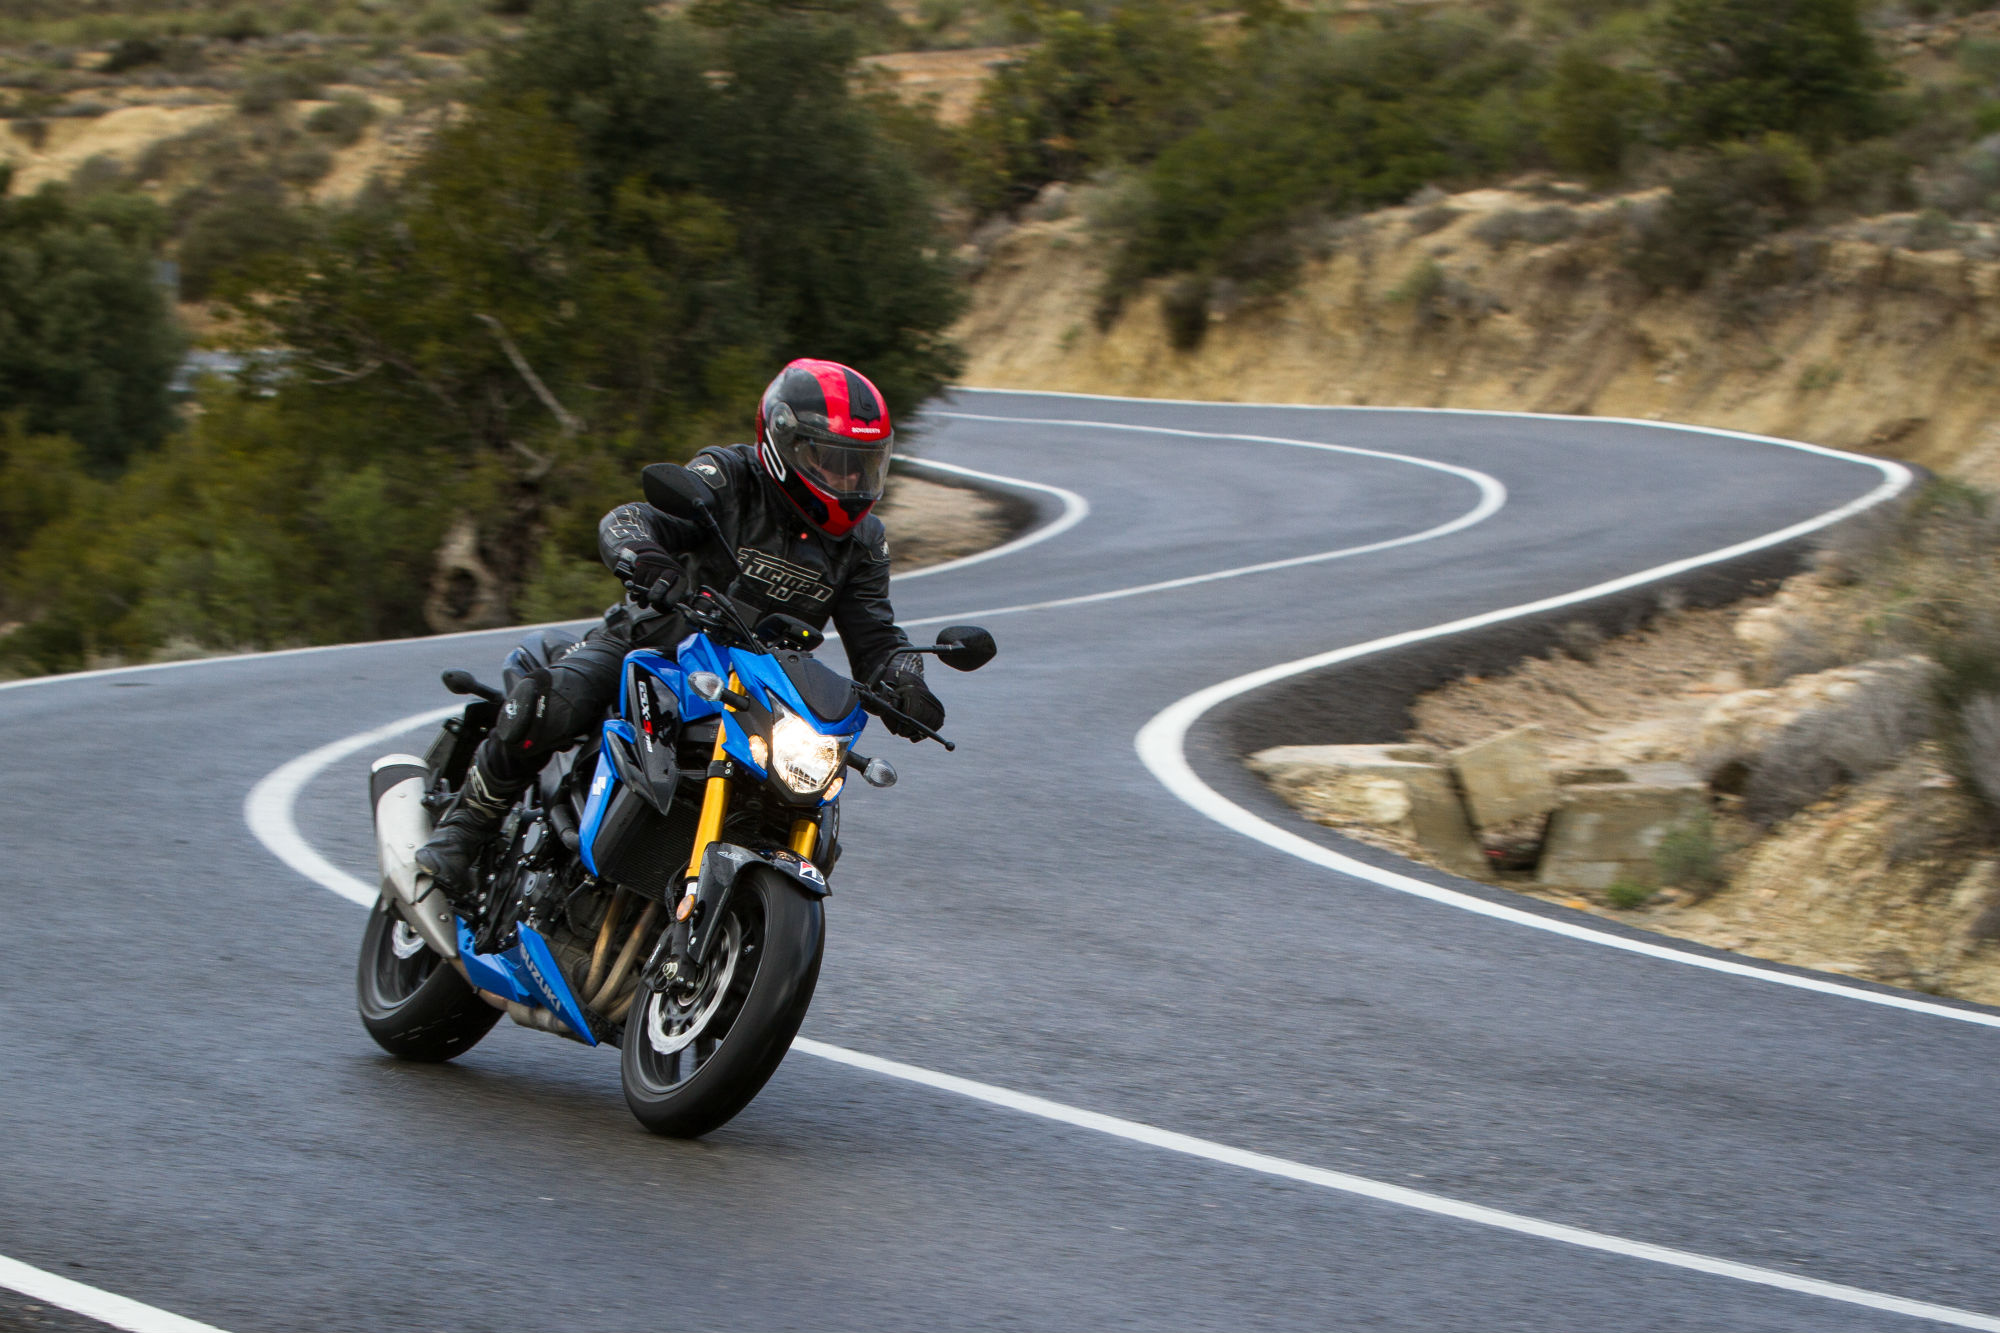 2018 Suzuki GSX-S750 and GSX-S750Z ABS - FIRST LOOK REVIEW | Cycle ...